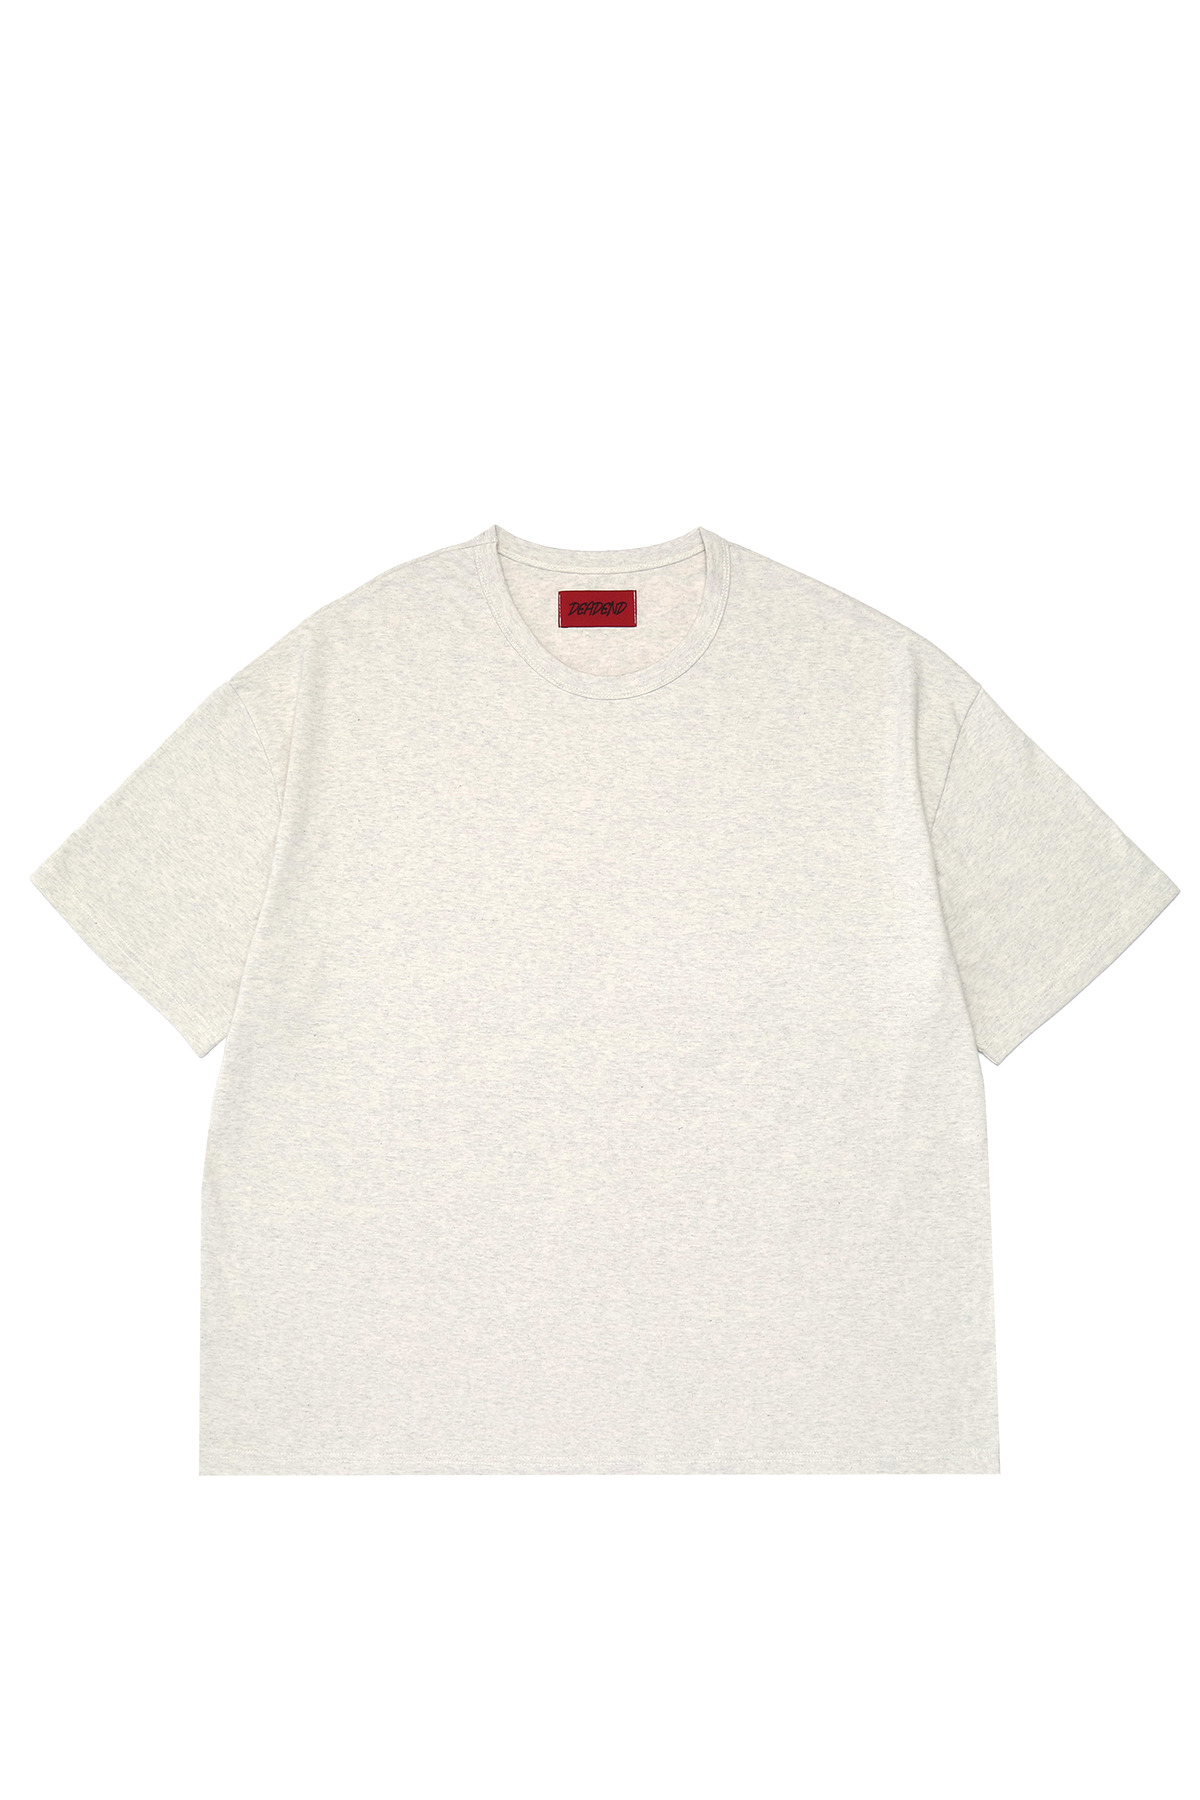 OATMEAL SHORT SLEEVE